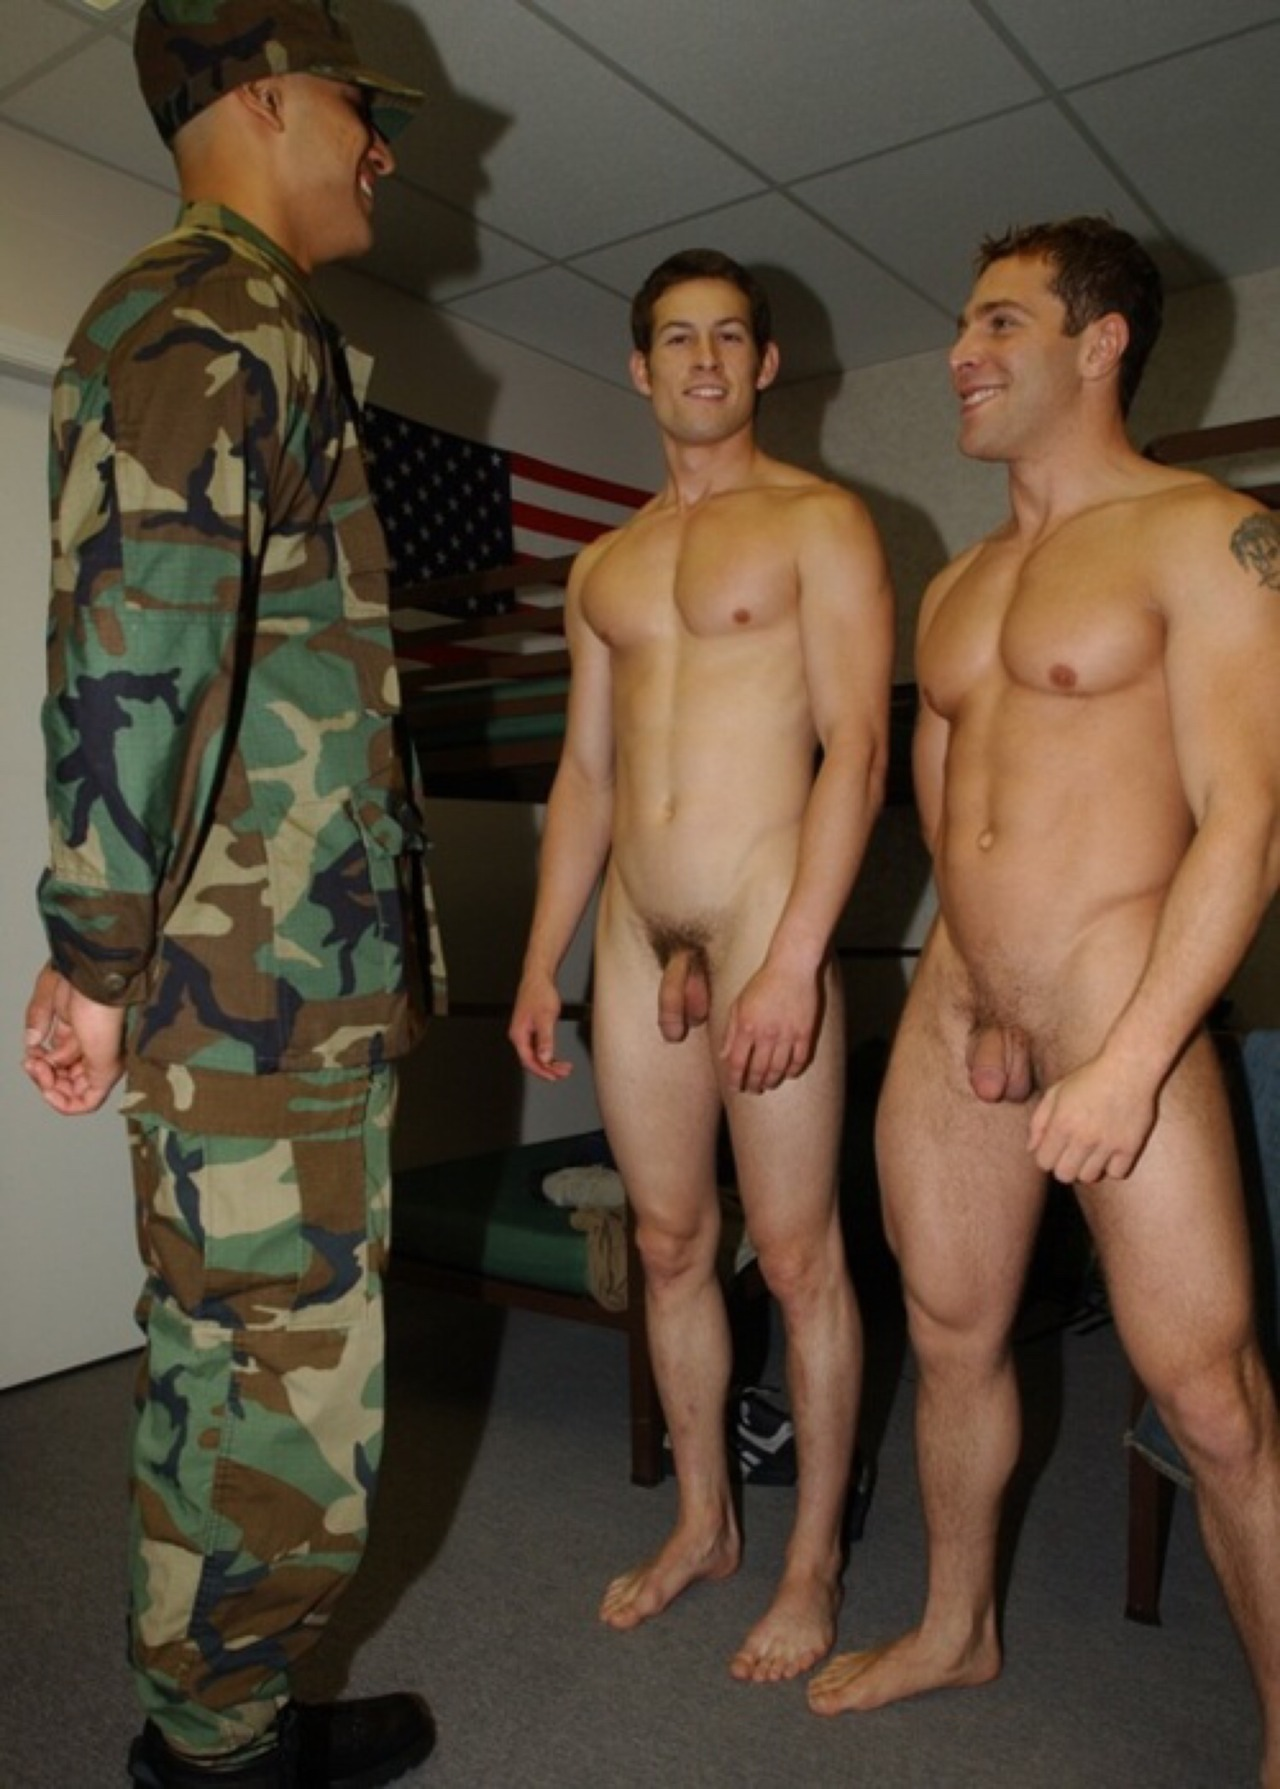 Gay fetish boys doctor and naked military physical first time my man meat